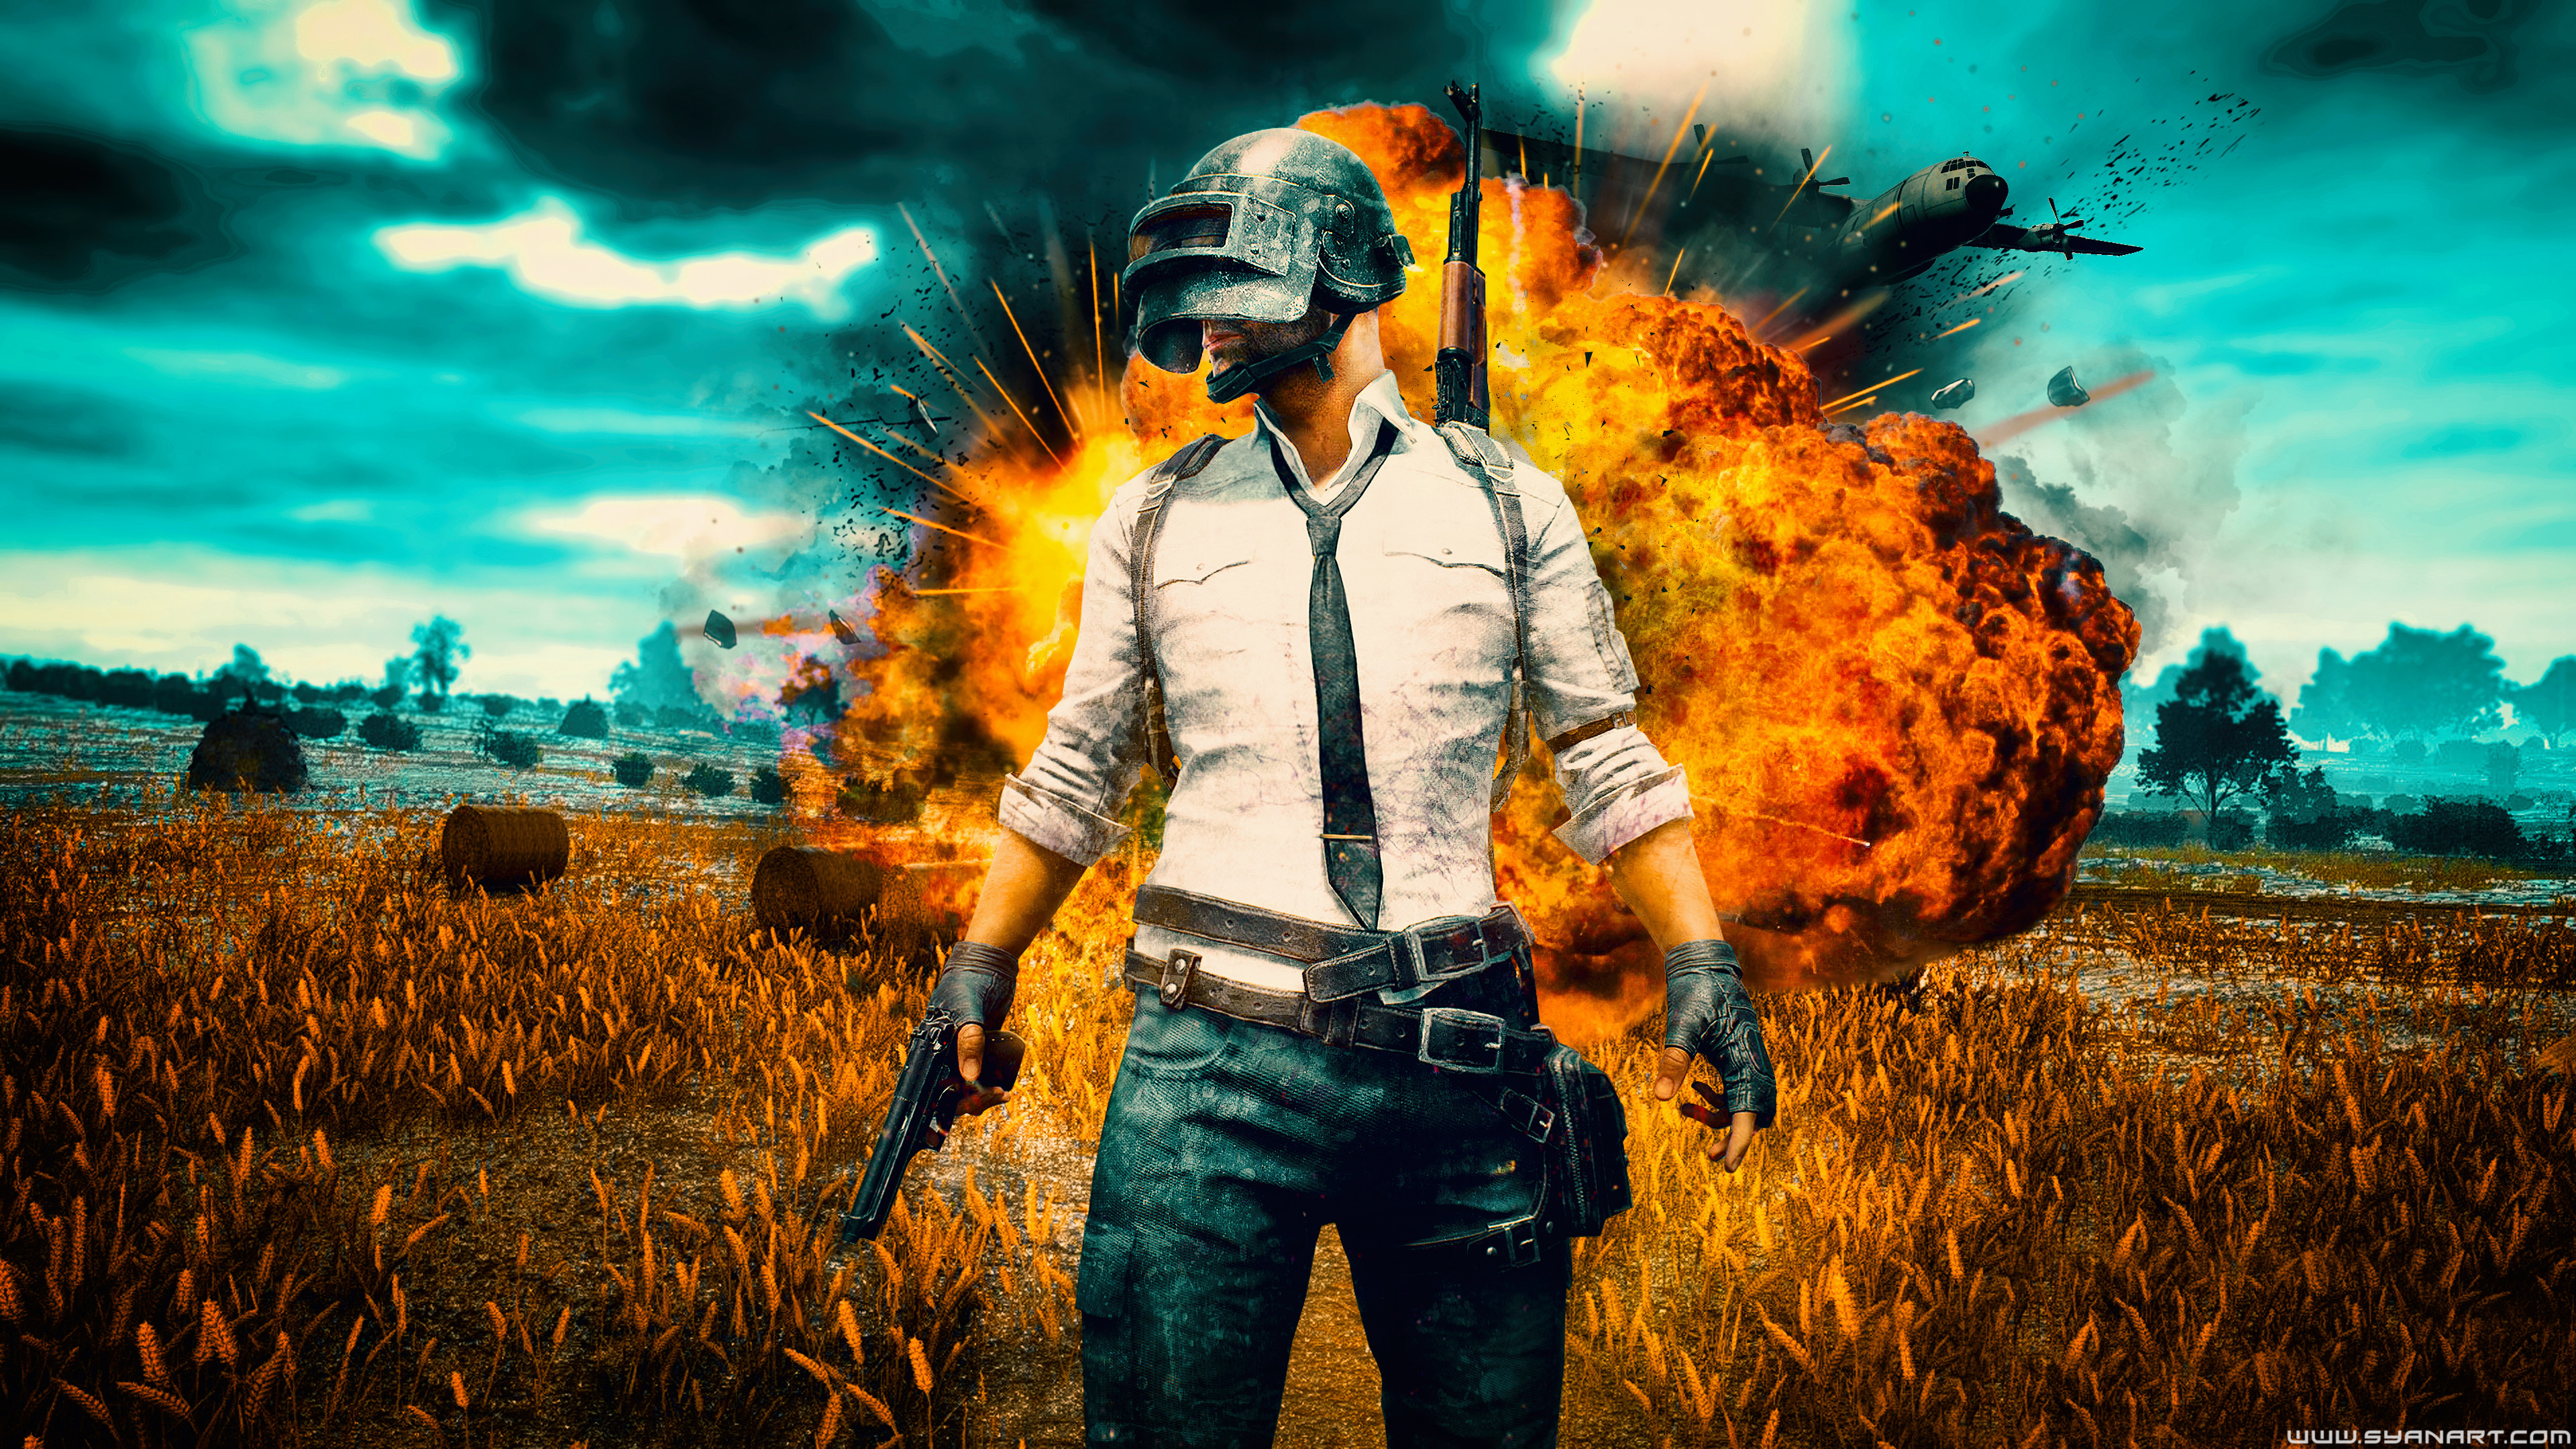 Pubg Game Hd Wallpaper Download: Pub Wallpaper (57+ Images